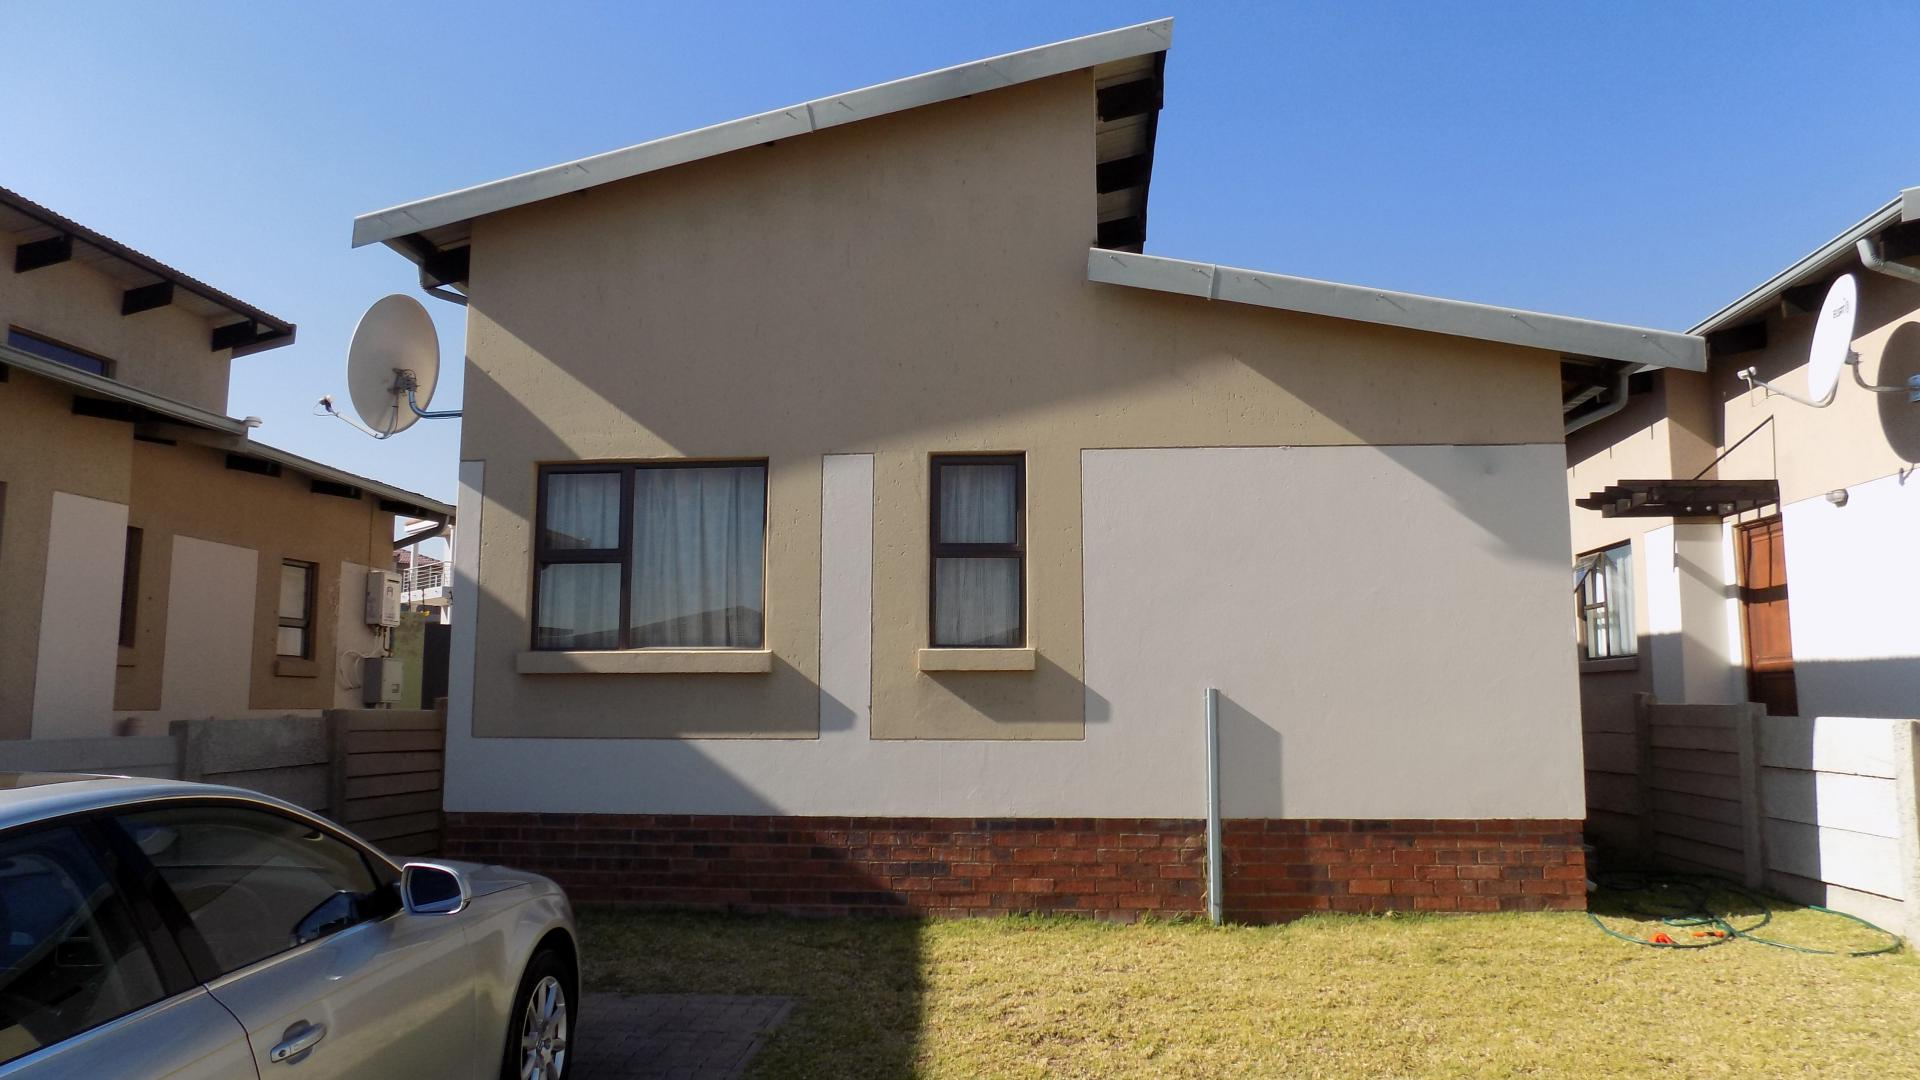 3 bedroom sectional title for sale for sale in sagewood for Sage wood